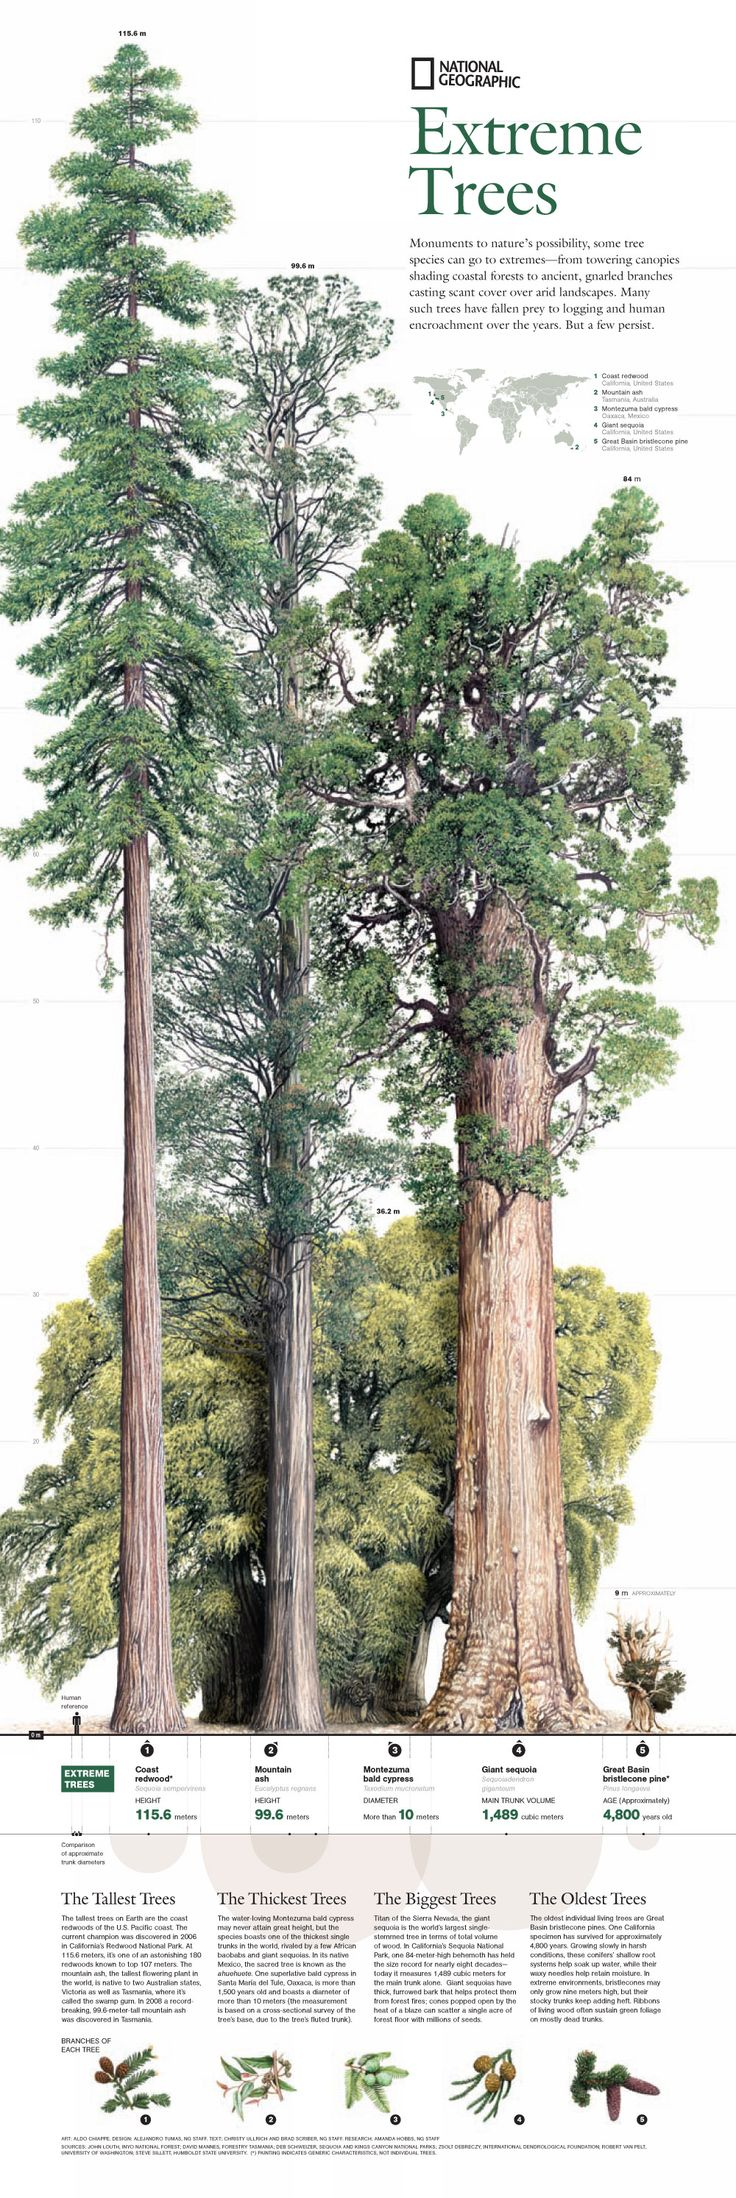 4. The tallest, biggest, thickest, oldest trees: http://en.wikipedia.org/wiki/Sequoia_sempervirens -->> http://en.wikipedia.org/wiki/Eucalyptus_regnans -->> http://en.wikipedia.org/wiki/Sequoiadendron_giganteum -->> http://en.wikipedia.org/wiki/Taxodium_mucronatum -->> http://en.wikipedia.org/wiki/Great_Basin_Bristlecone_Pine